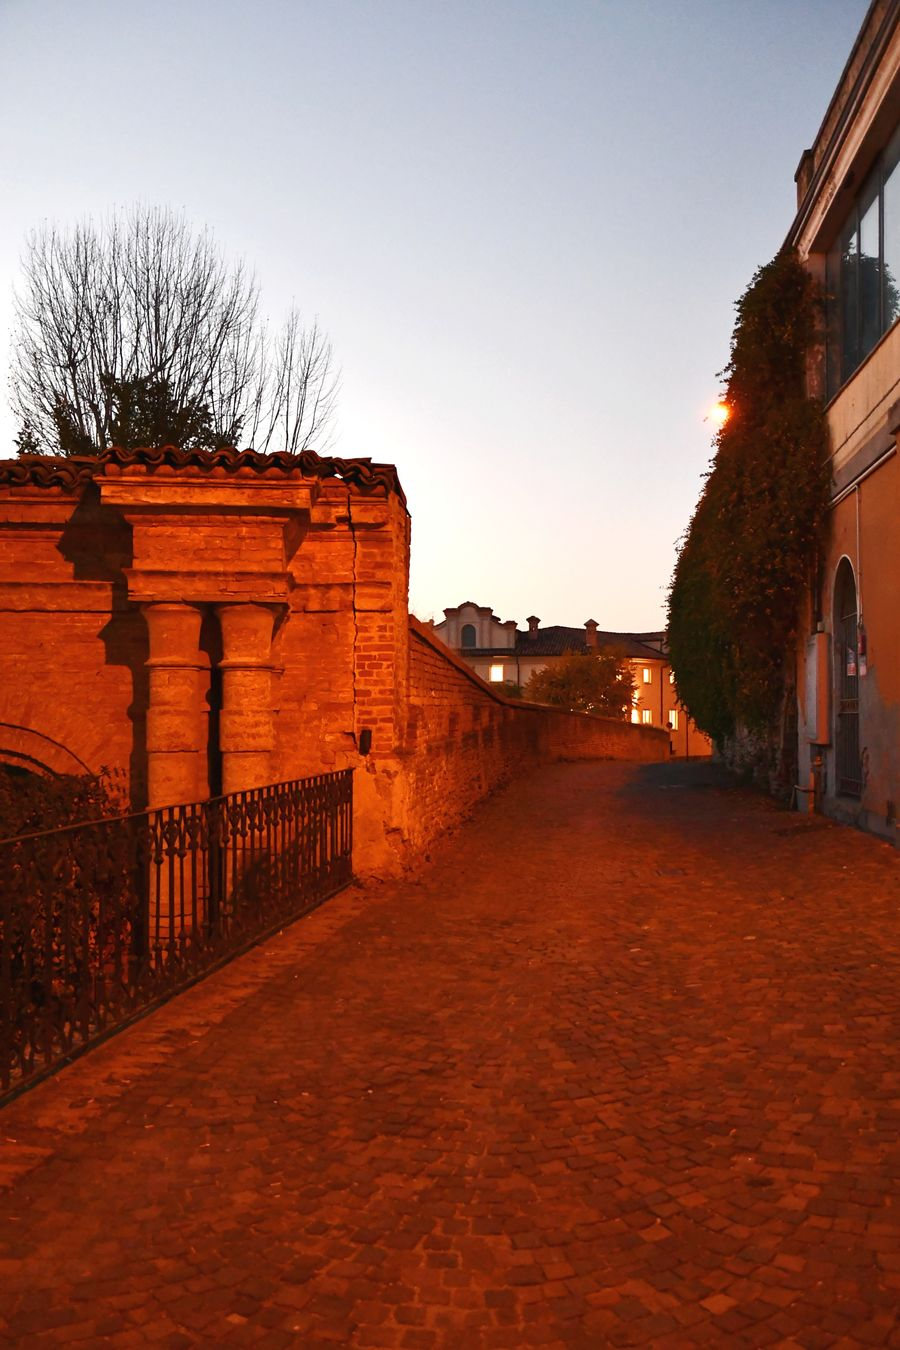 At Sunset Village Street In The Street Langhe Tranquility Silence Architecture Travel Destinations Building Exterior Outdoors Built Structure No People Red Vacations